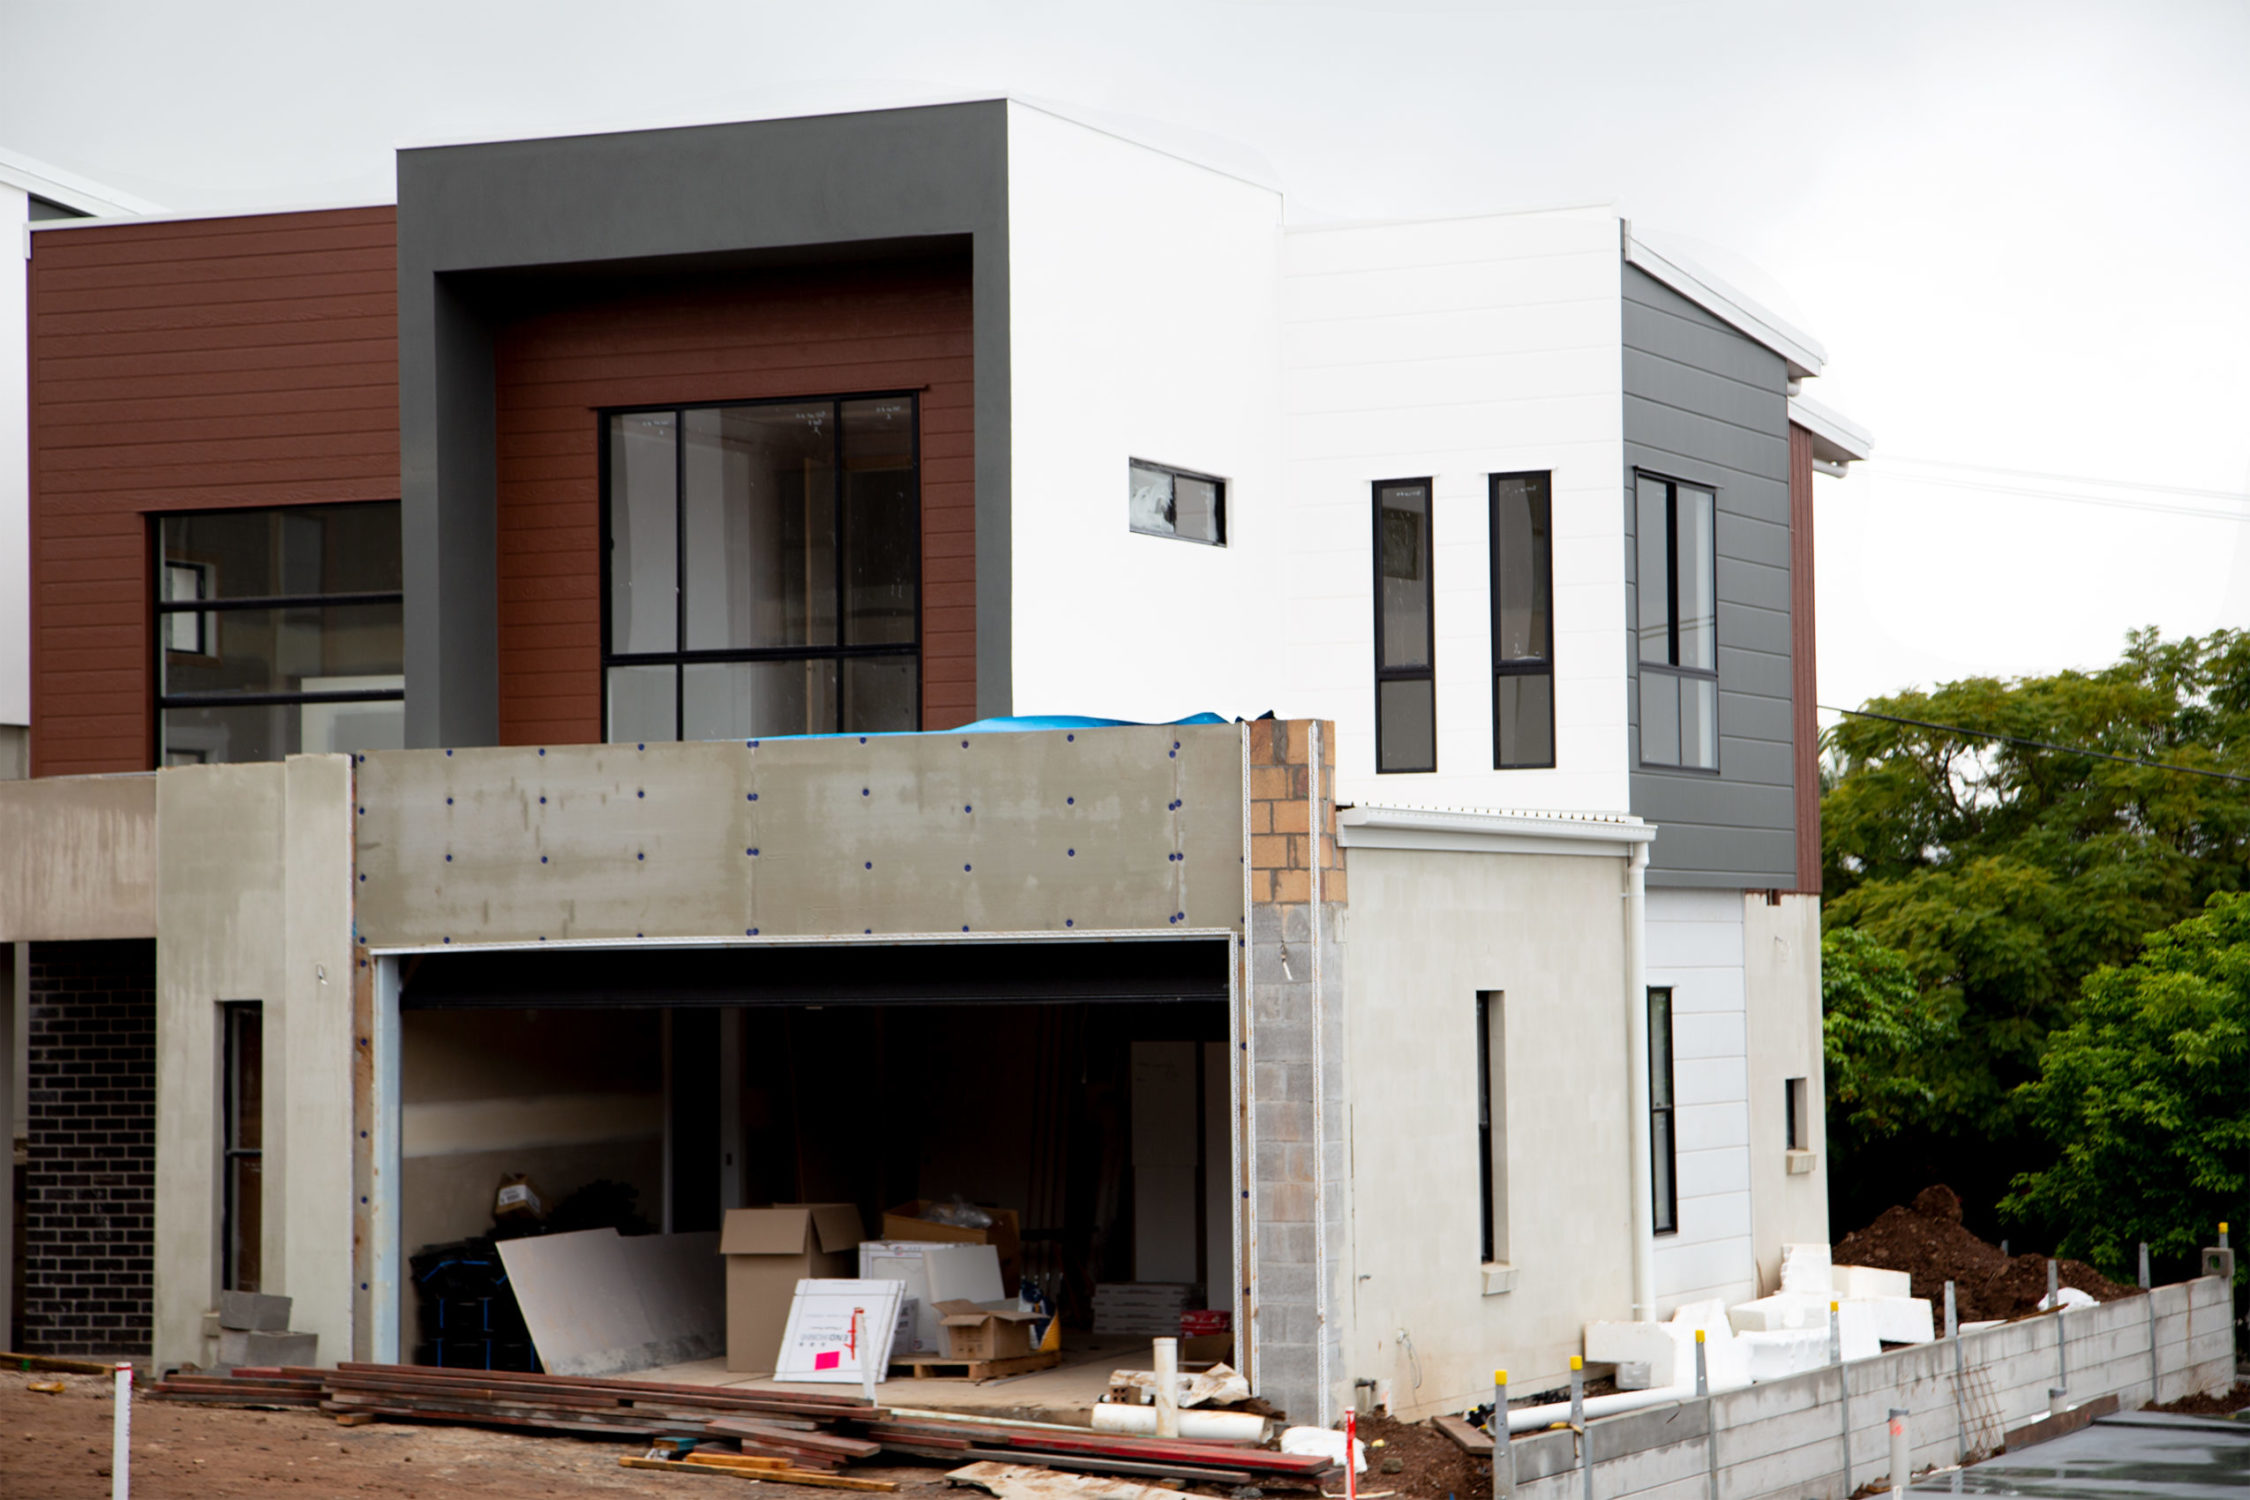 stage 1 townhouse development in Mount Gravatt Brisbane